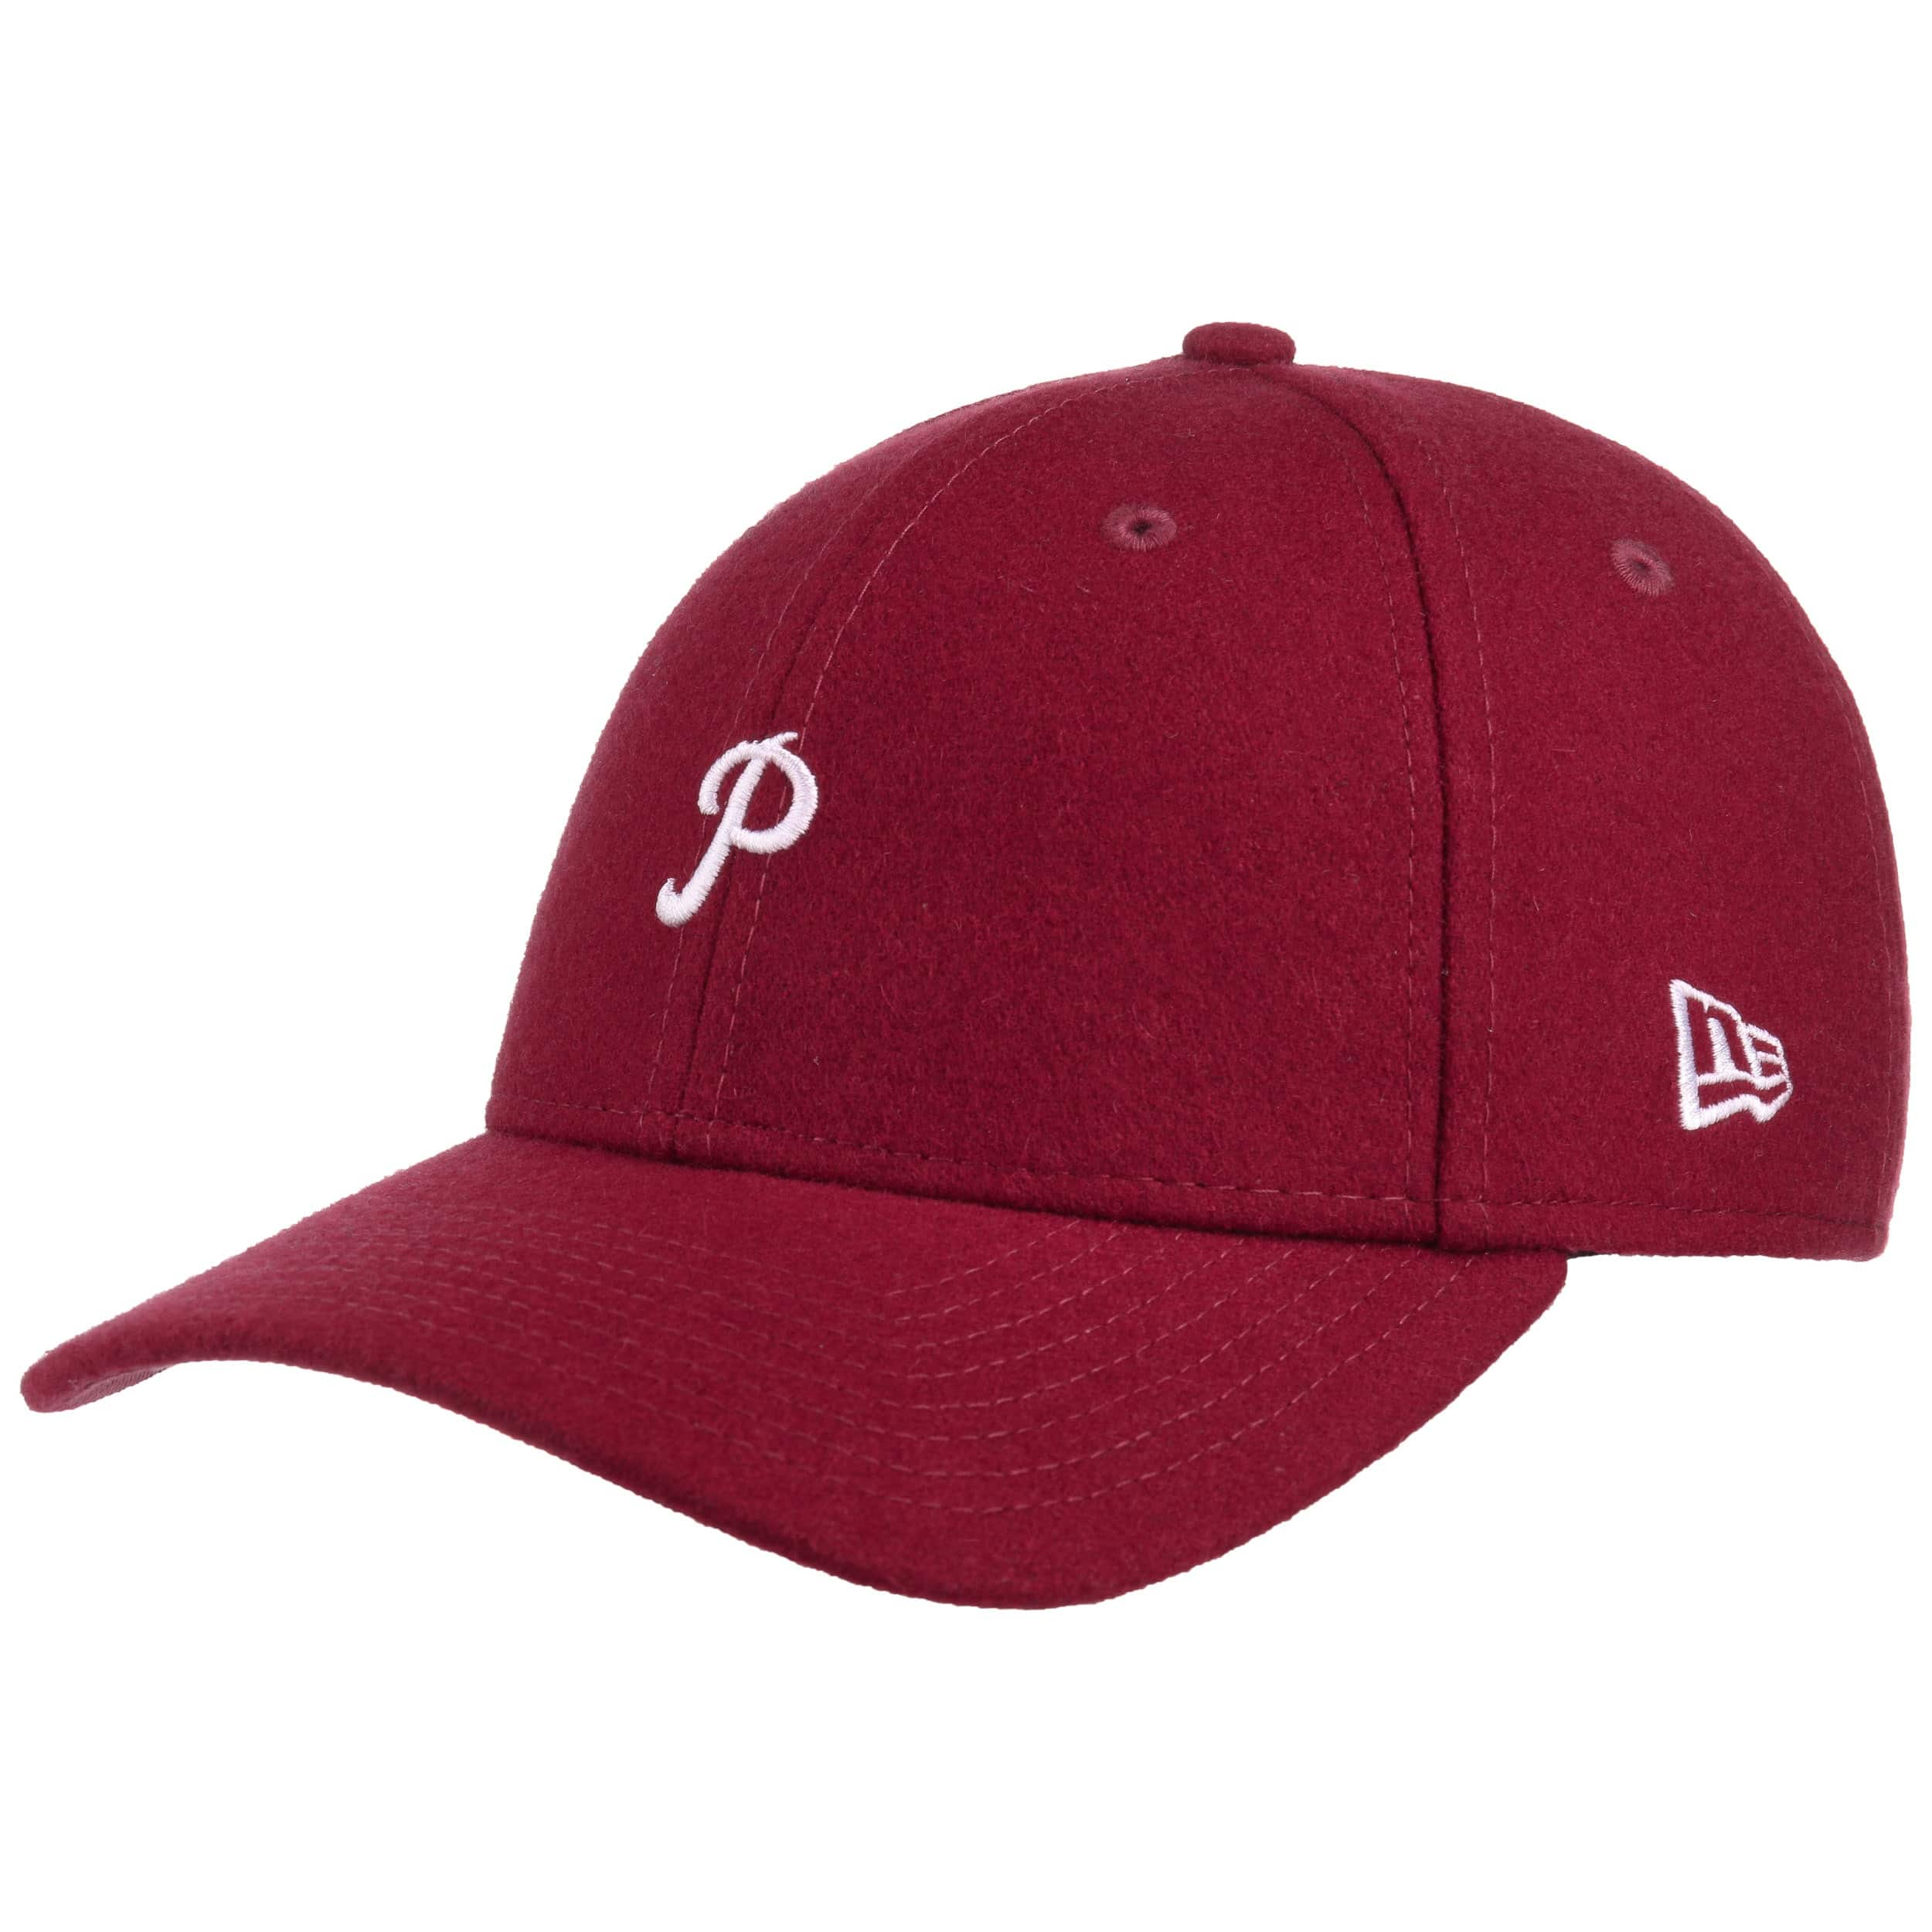 ... get 9forty mini logo phillies cap by new era 6 2b9ee 4a24e f6309032ce3